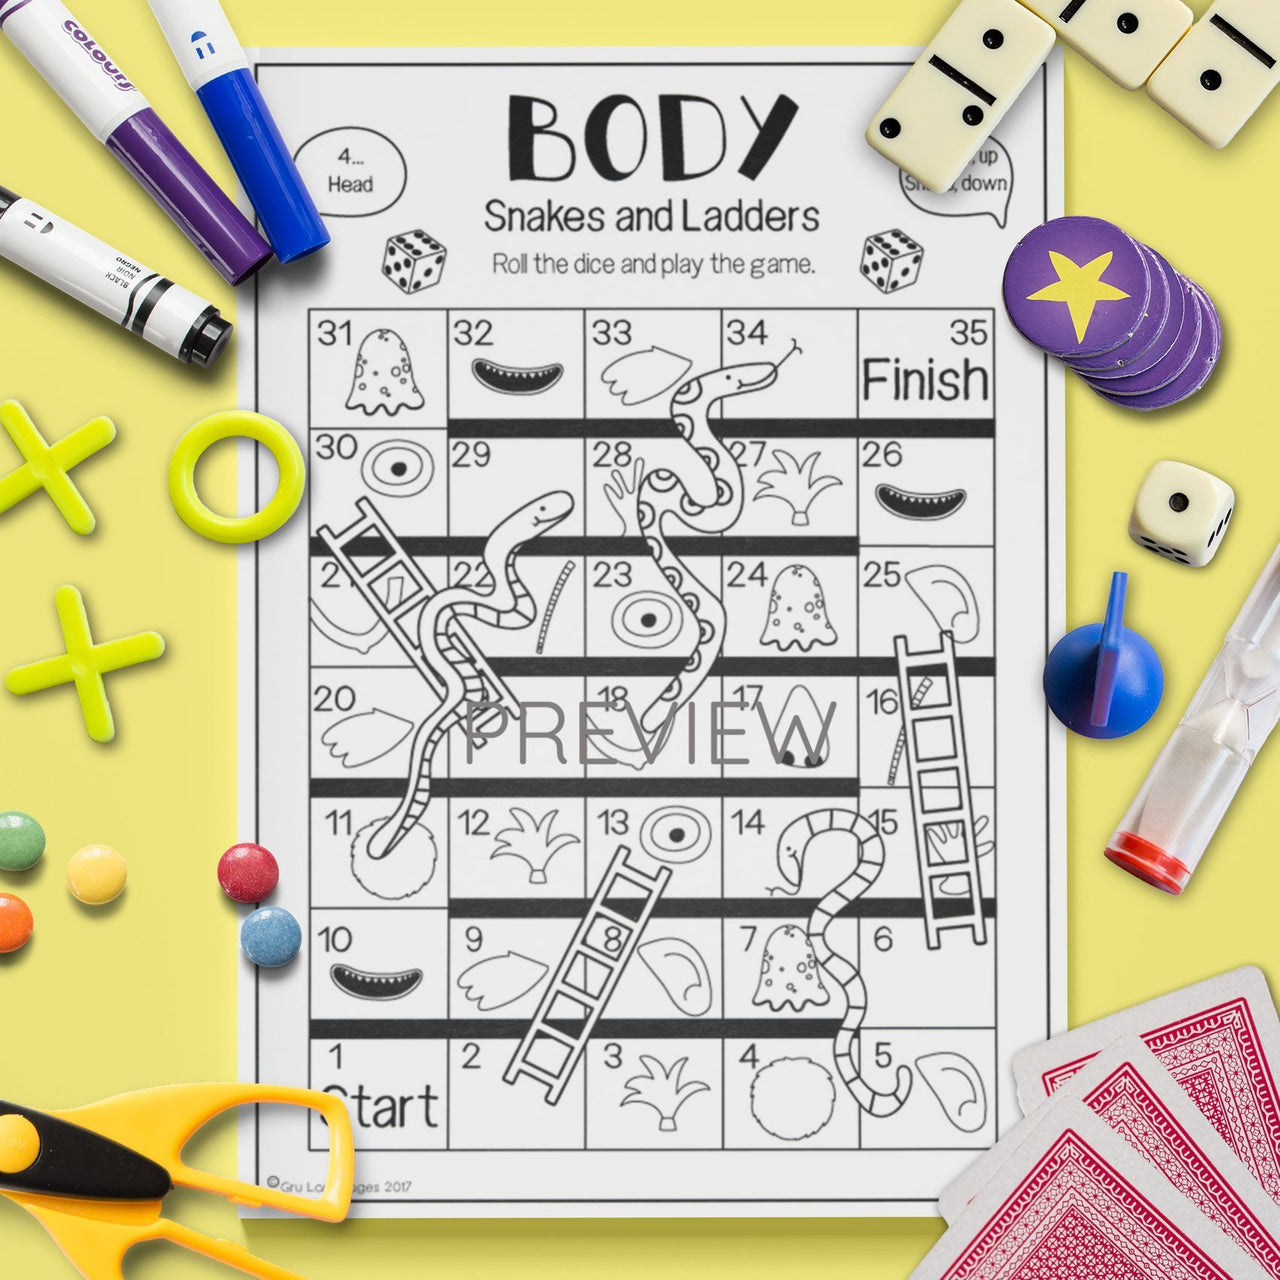 ESL English Kids Face and Body Snakes and Ladders Game Worksheet